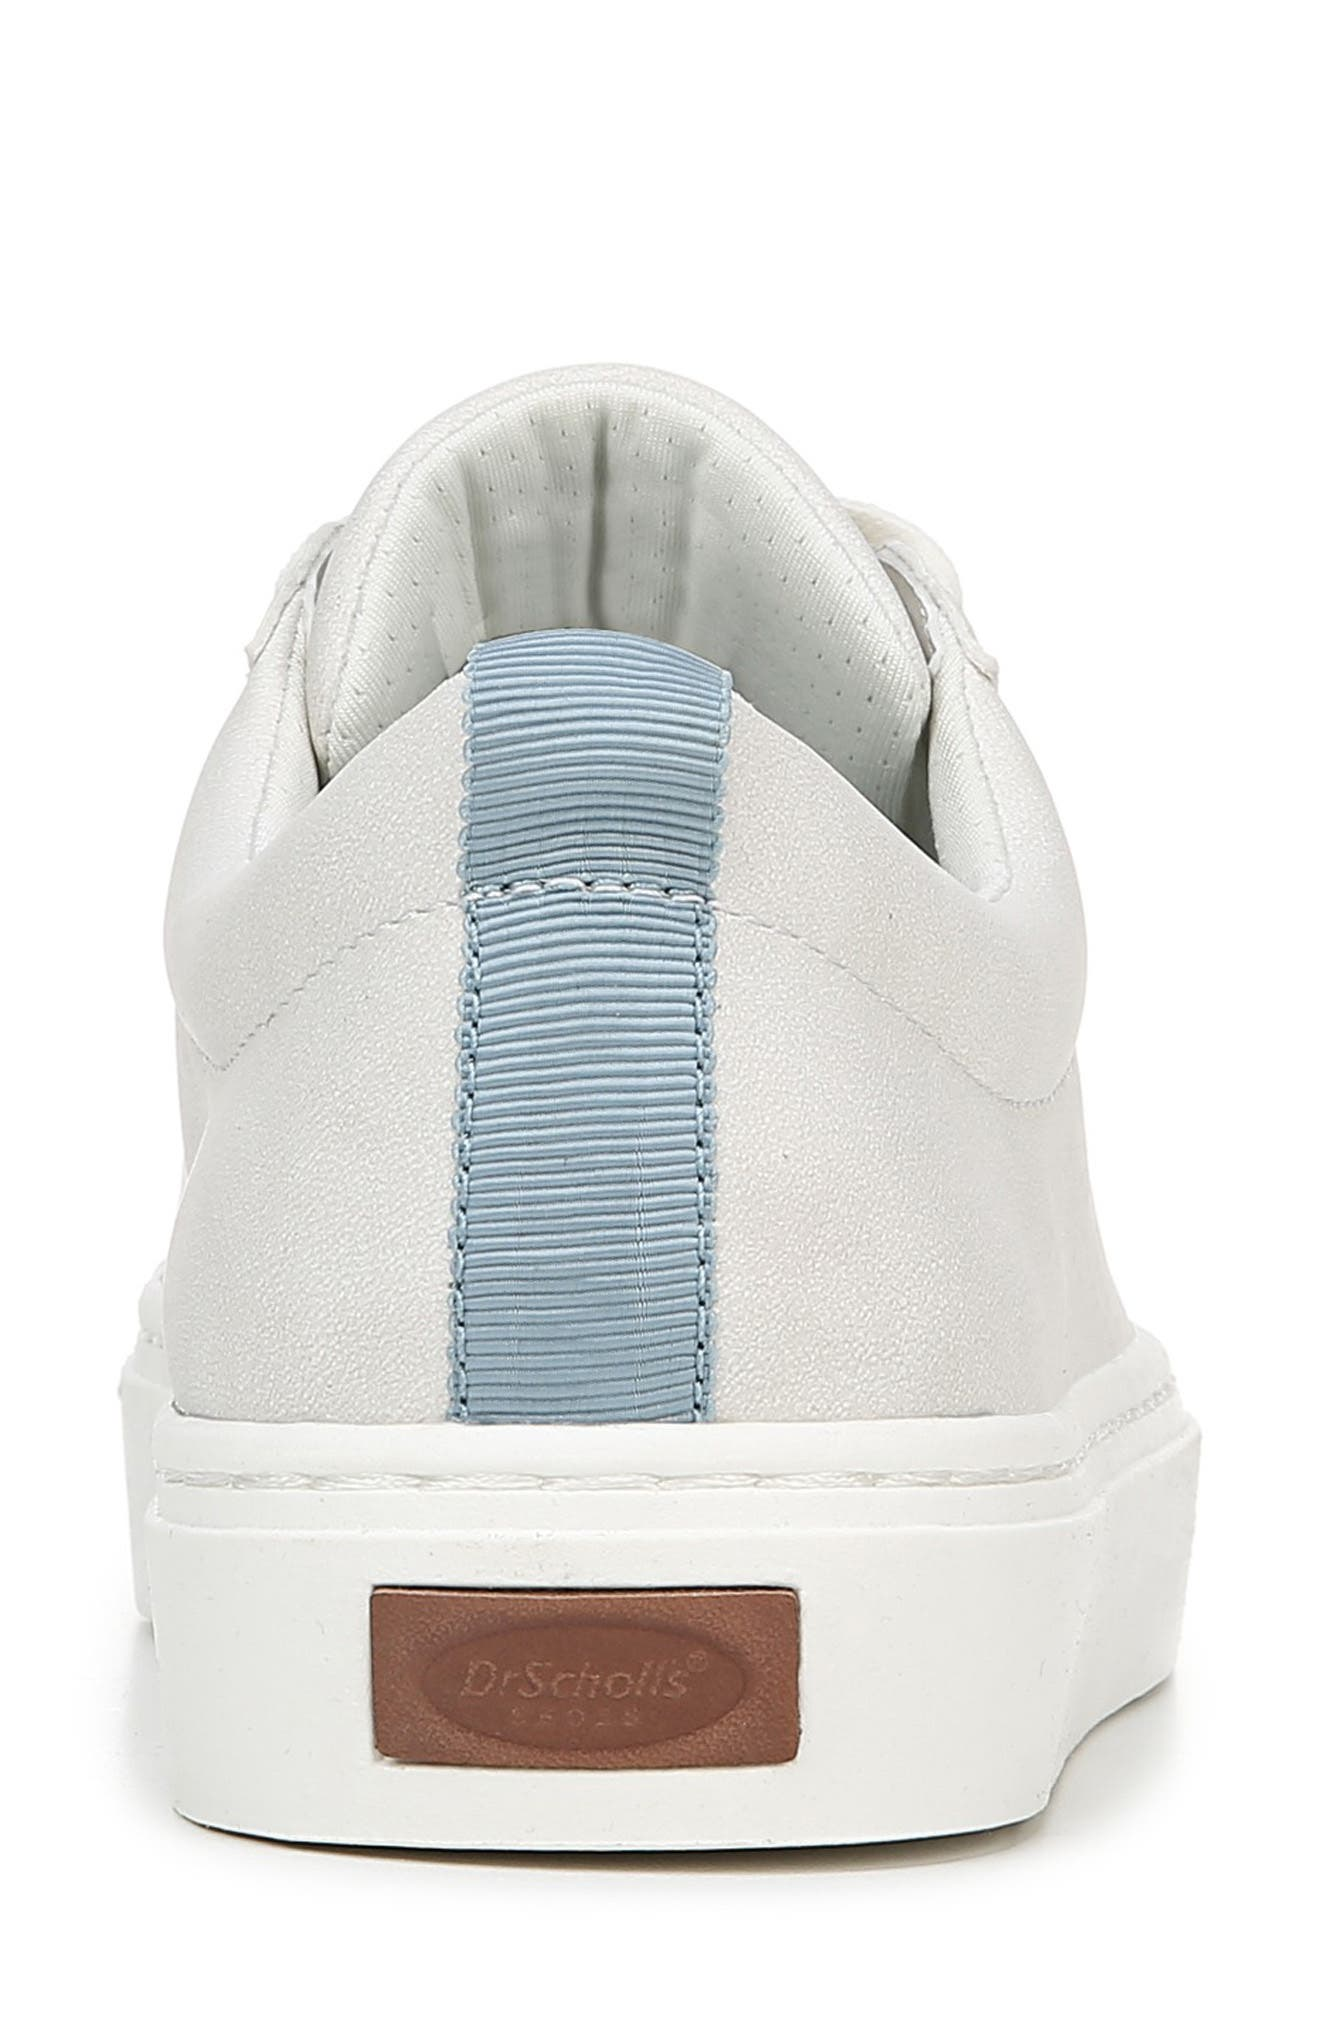 No Bad Vibes Sneaker,                             Alternate thumbnail 6, color,                             WHITE FAUX LEATHER